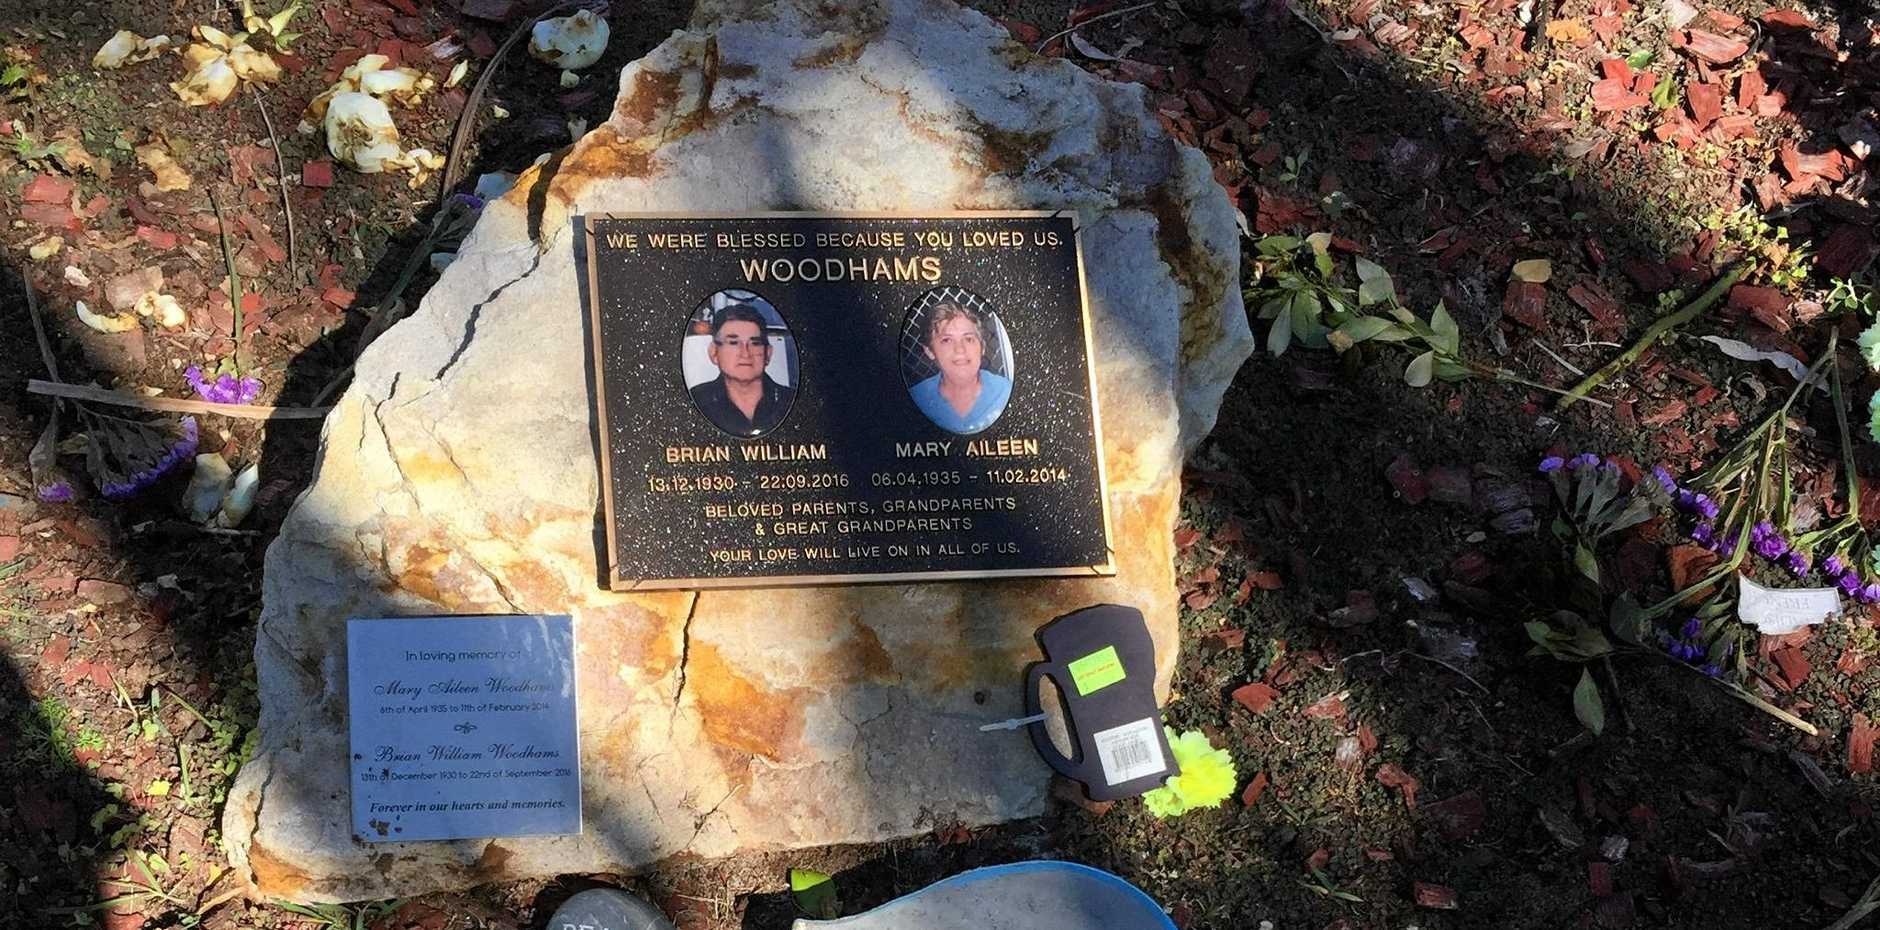 Desert roses were removed from the final resting place of Brian and Mary Woodhams.